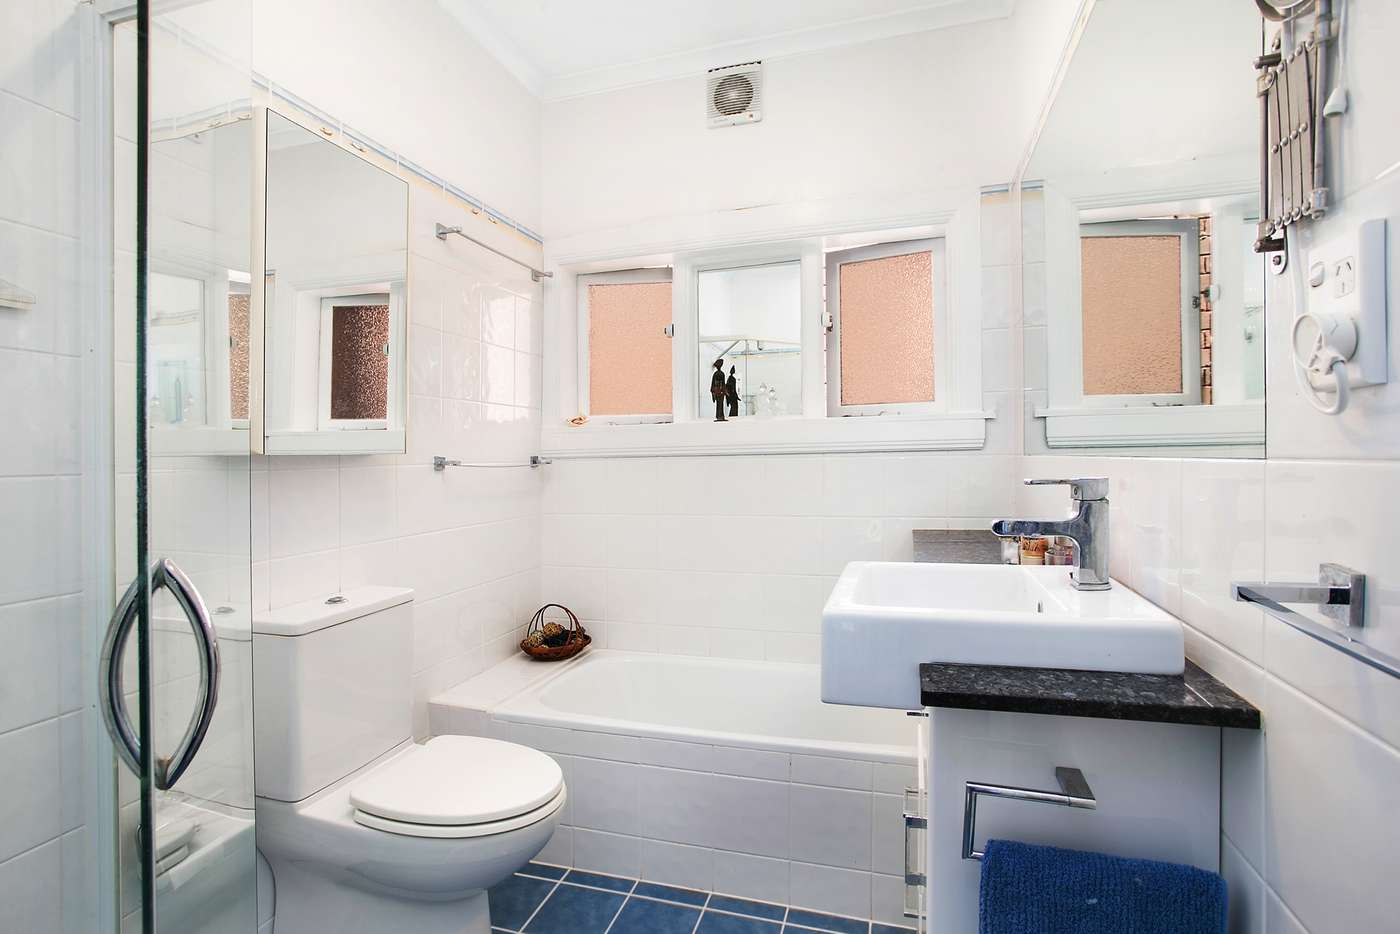 Fifth view of Homely house listing, 1 Loch Maree Street, Maroubra NSW 2035